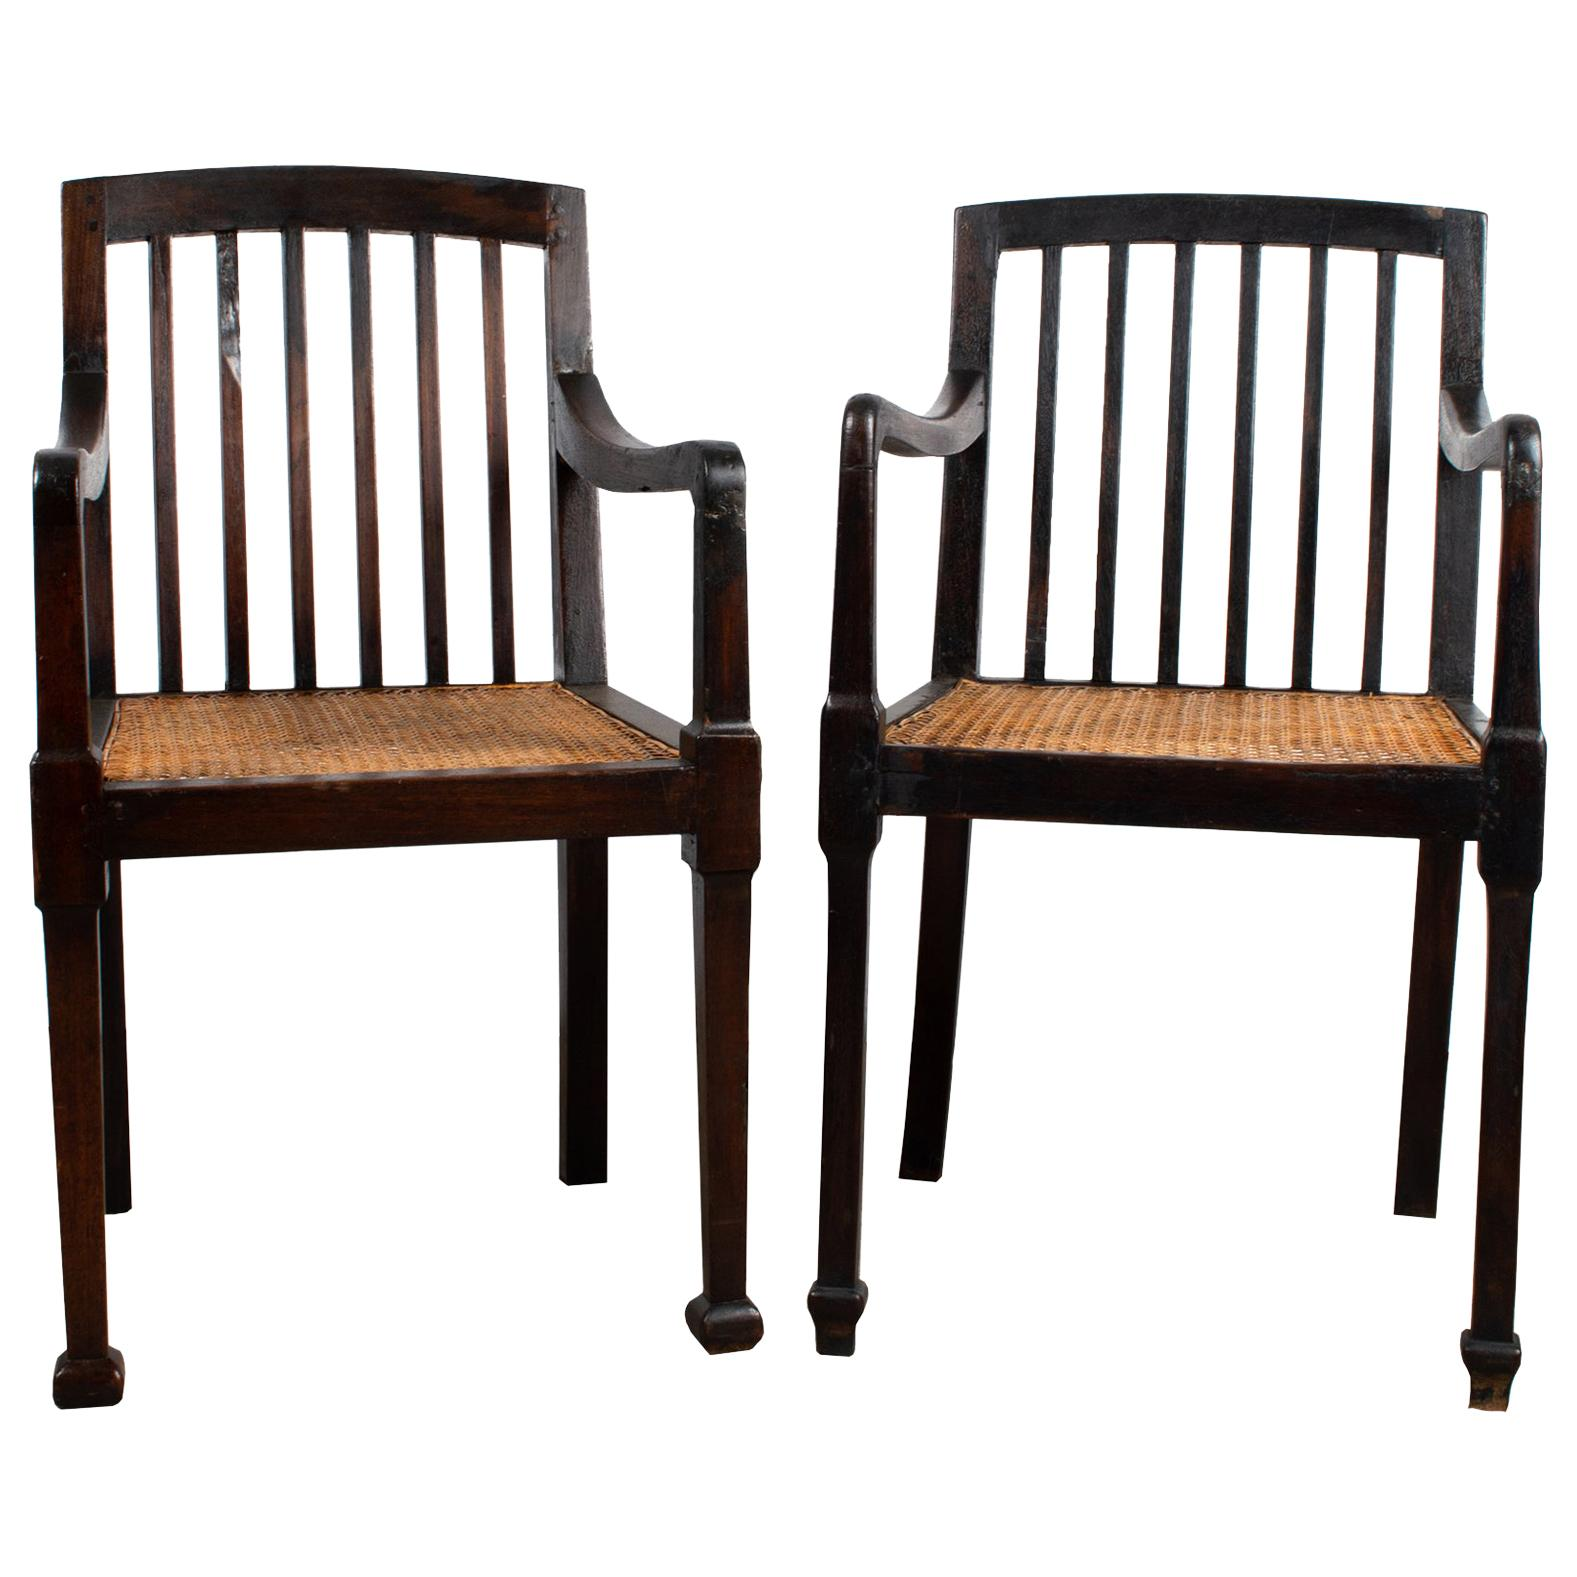 Pair of Antique British Colonial Teak and Rattan Hall Elbow Chairs, circa 1900